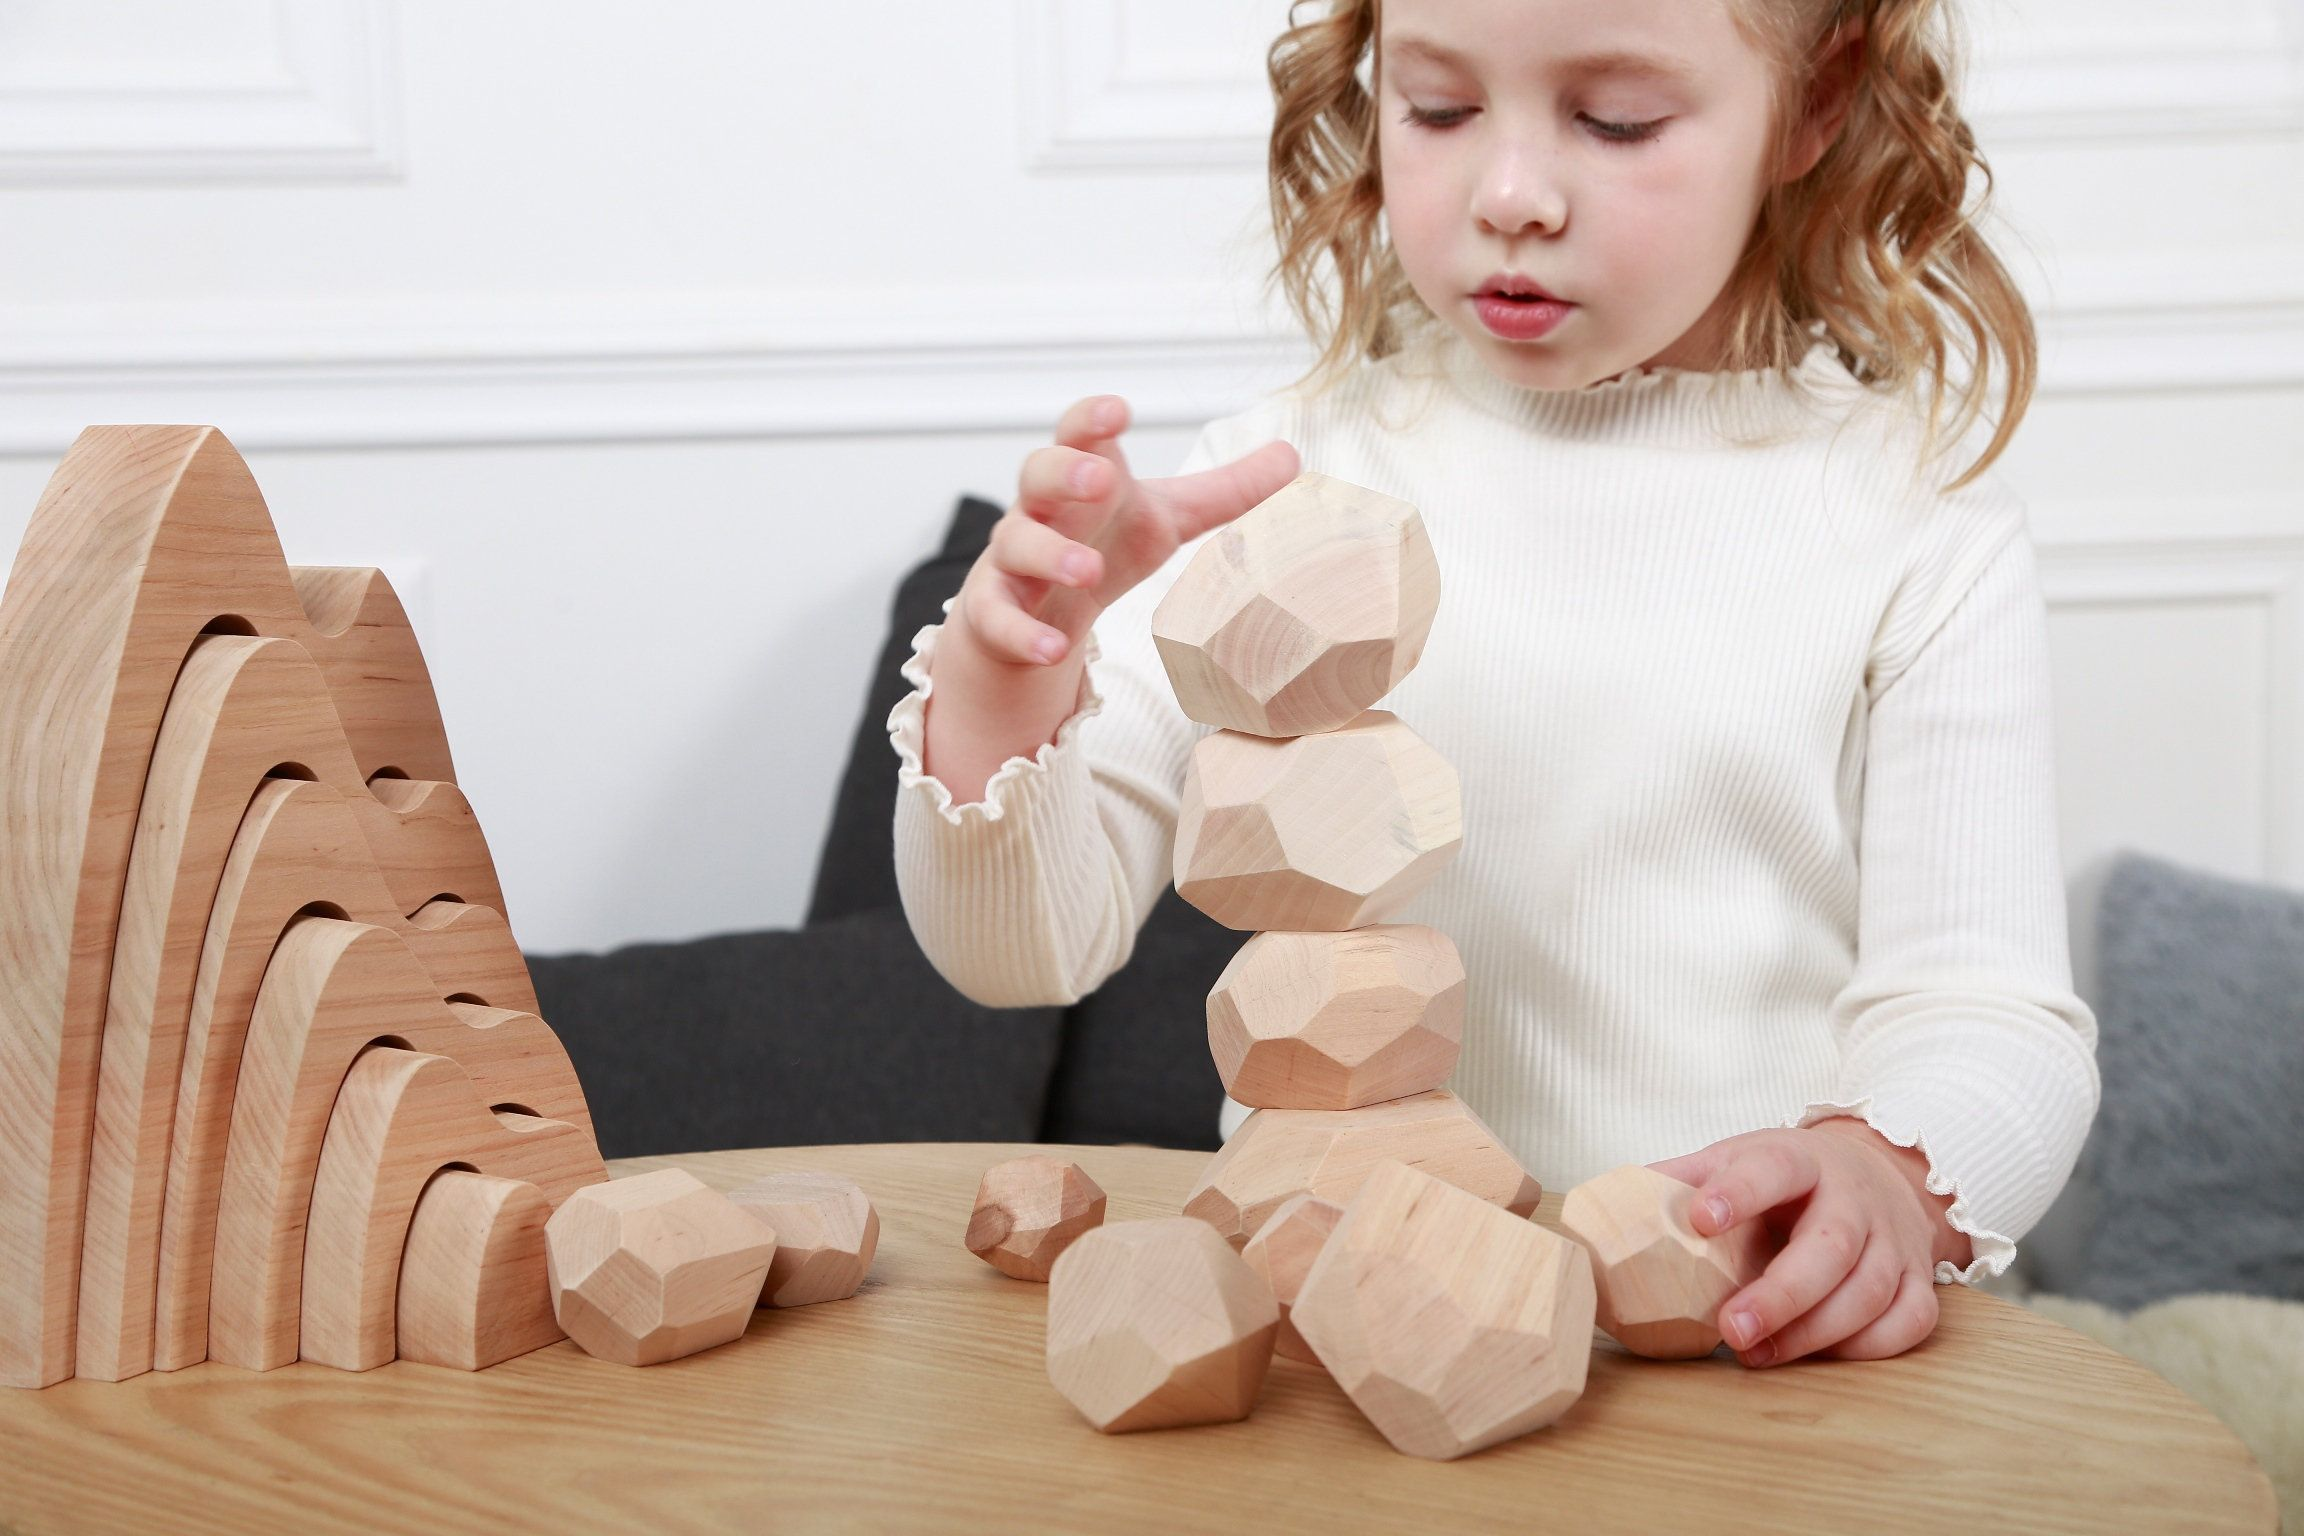 Montessori Toy Wooden Ring Stacker Unpainted Wooden Stacking Toy Toddlers Gift Waldorf Toys Natural Birthday Gift Natural Stacking Toy